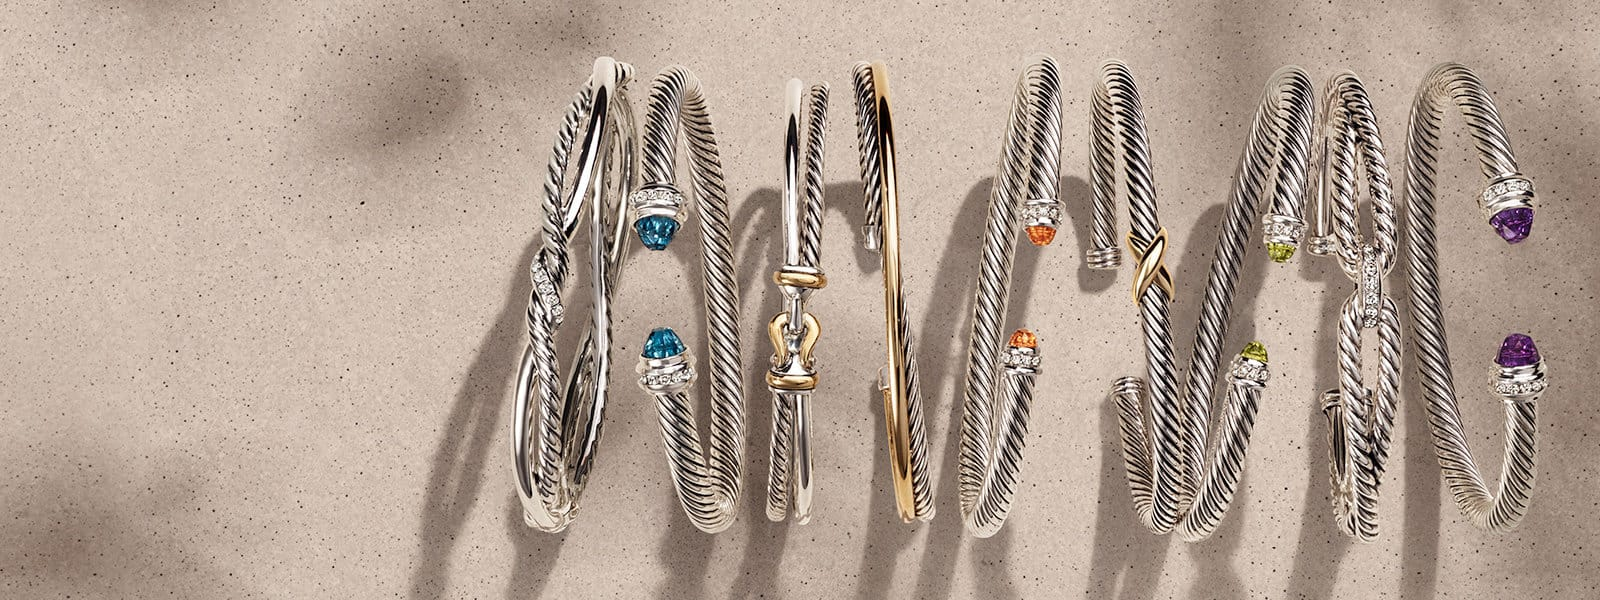 A horizontal stack of David Yurman The Cable Collection®, X Collection and Cable Loop bracelets in sterling silver with or without diamonds, 14K yellow gold or colored gemstones on a beige textured stone with long shadows.